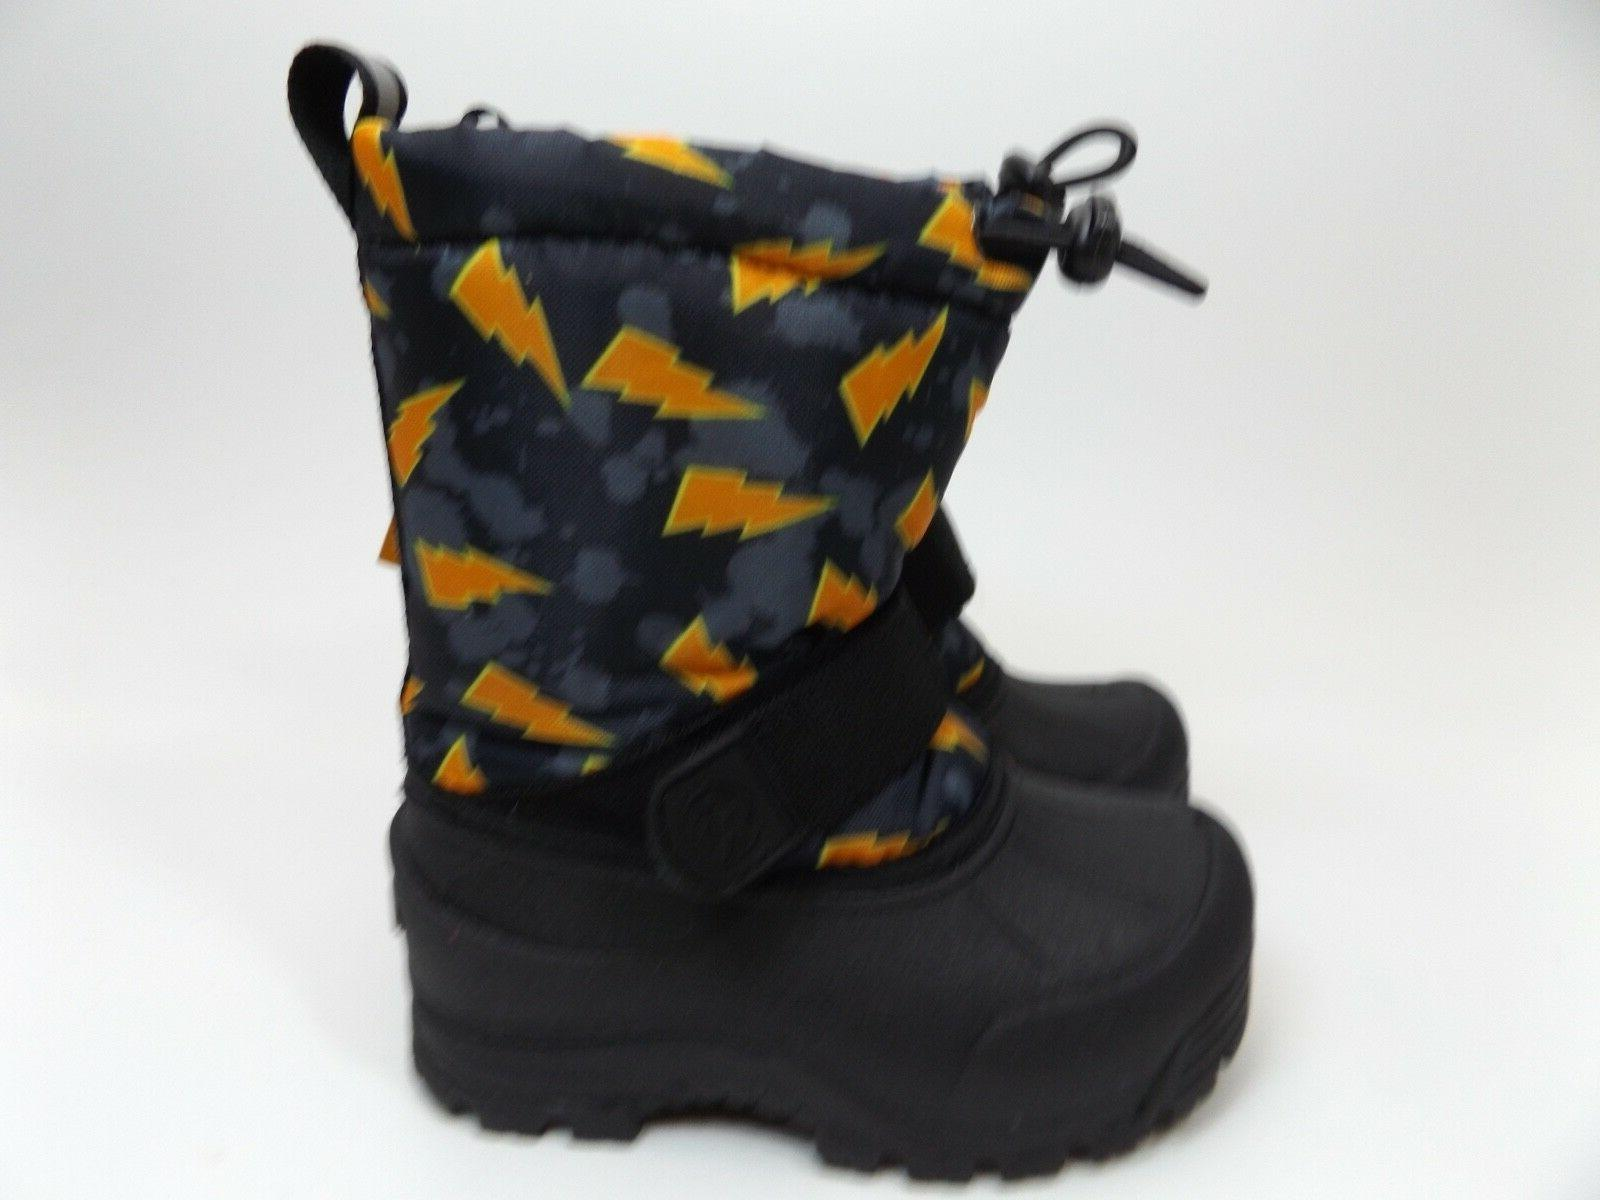 Northside Boots 8960